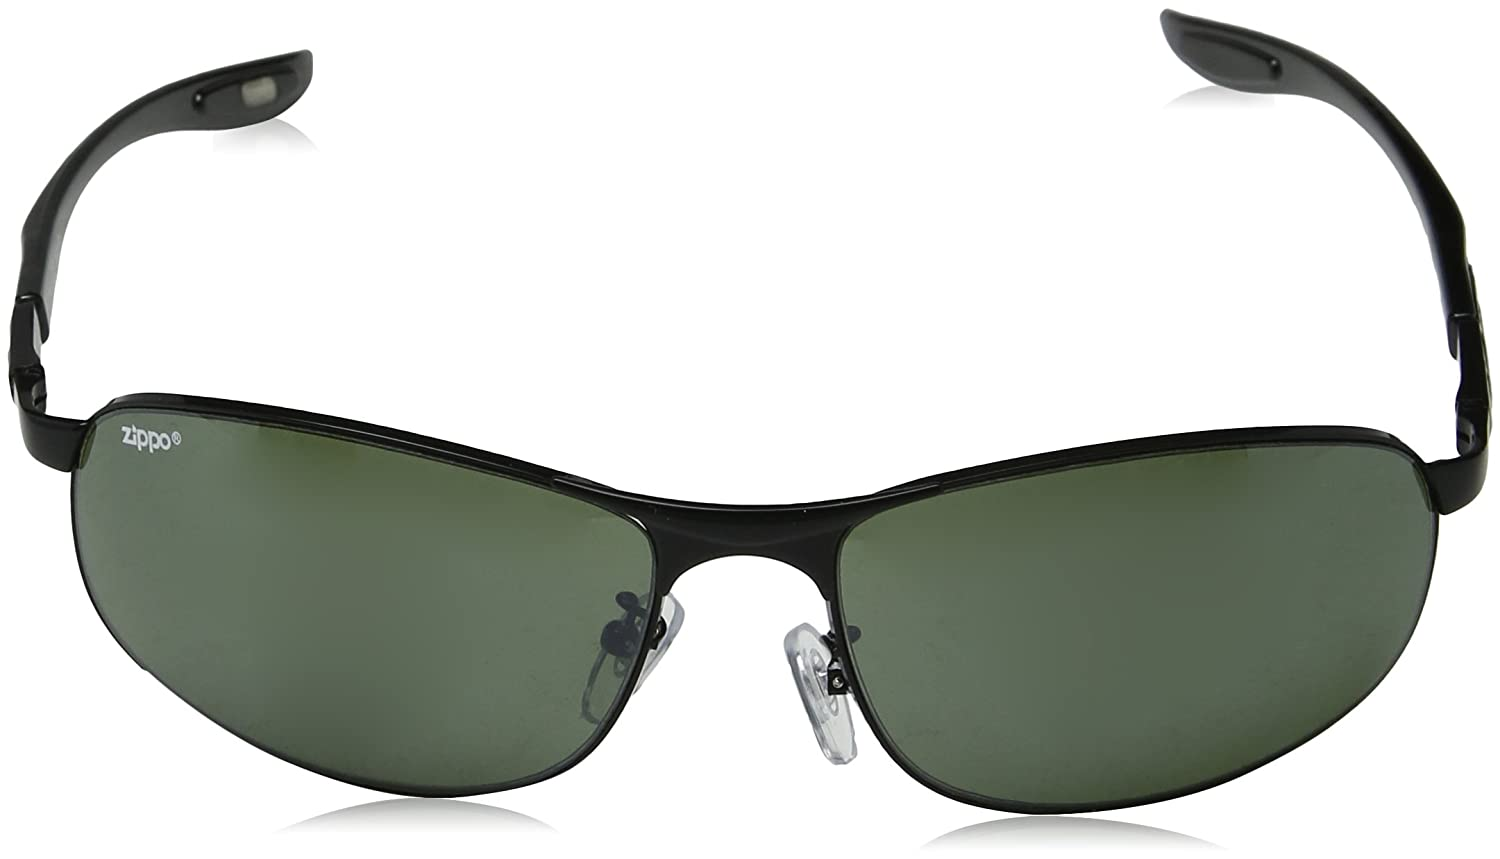 Zippo Frame and Temples Gafas de Sol, Unisex, Negro, Medium: Amazon.es: Deportes y aire libre